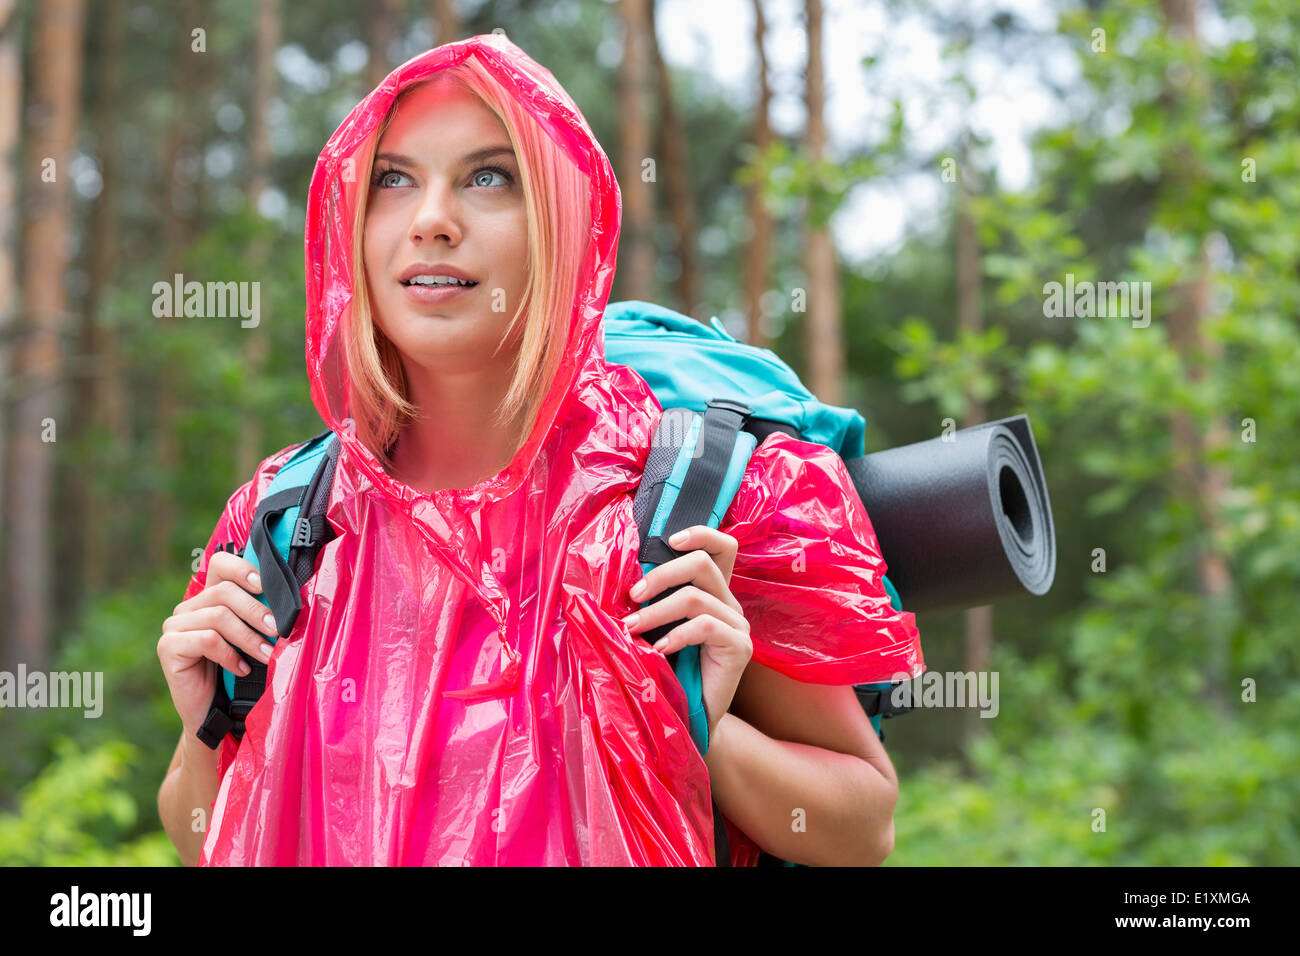 Beautiful backpacker in raincoat looking away at forest - Stock Image